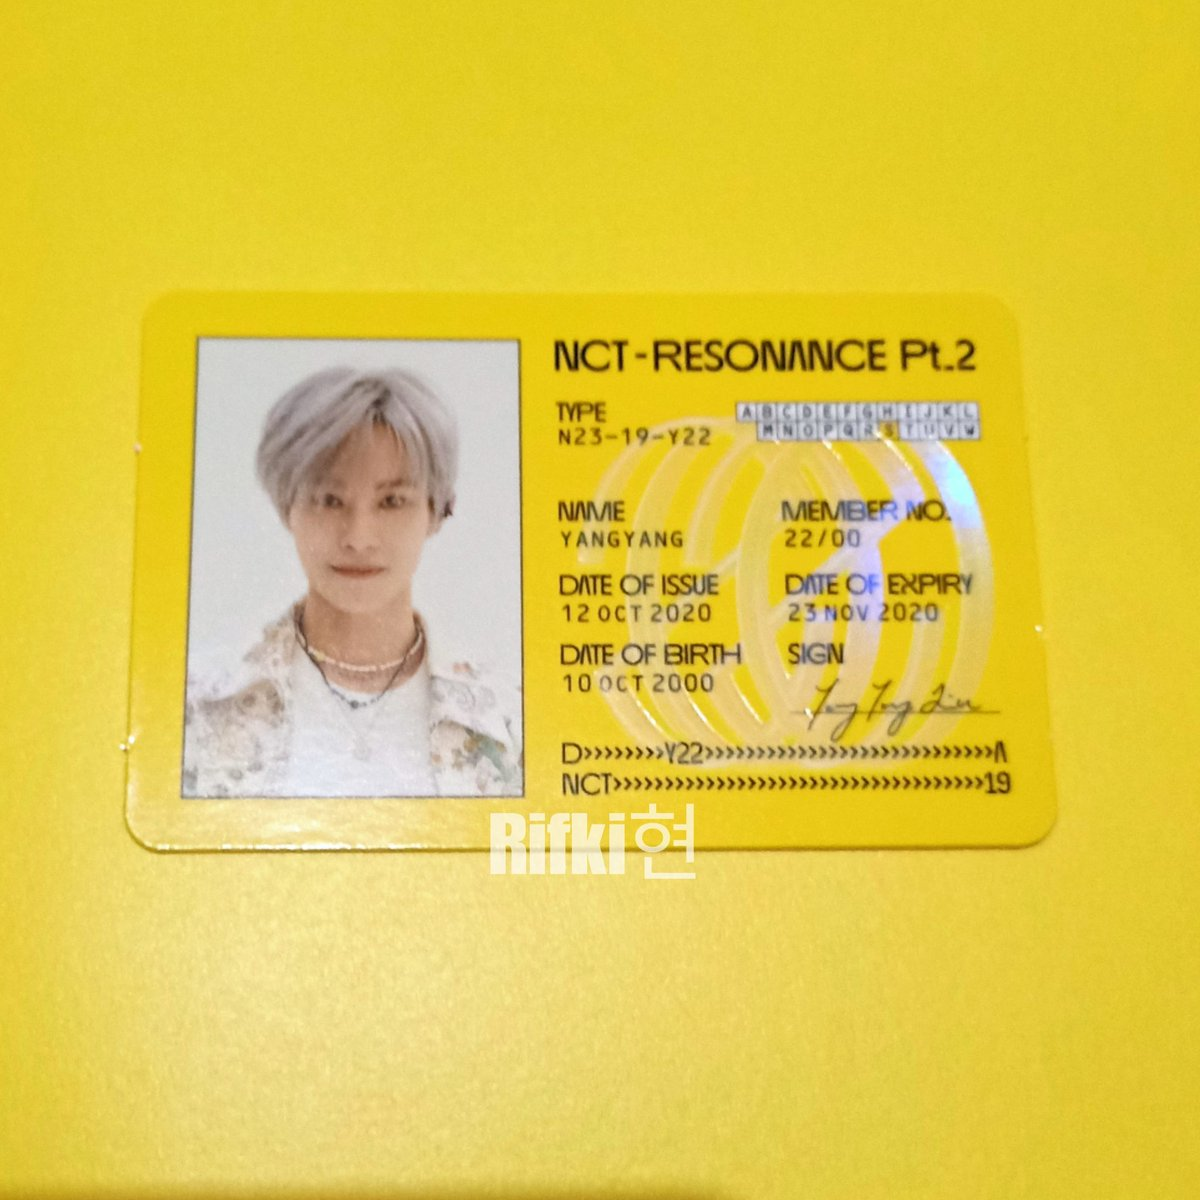 WTT 🇮🇩 INA ONLY  Departure Have : ID Yangyang Want : ID Jaemin/Jaehyun/Jungwoo  Arrival Have : AC Chenle Want : AC Jaemin/Jaehyun/Jungwoo  bisa orenji 🍊 #YANGYANG #JAEMIN #JAEHYUN #JUNGWOO #CHENLE #NCT #NCT127 #NCTU #NCTDREAM #WAYV